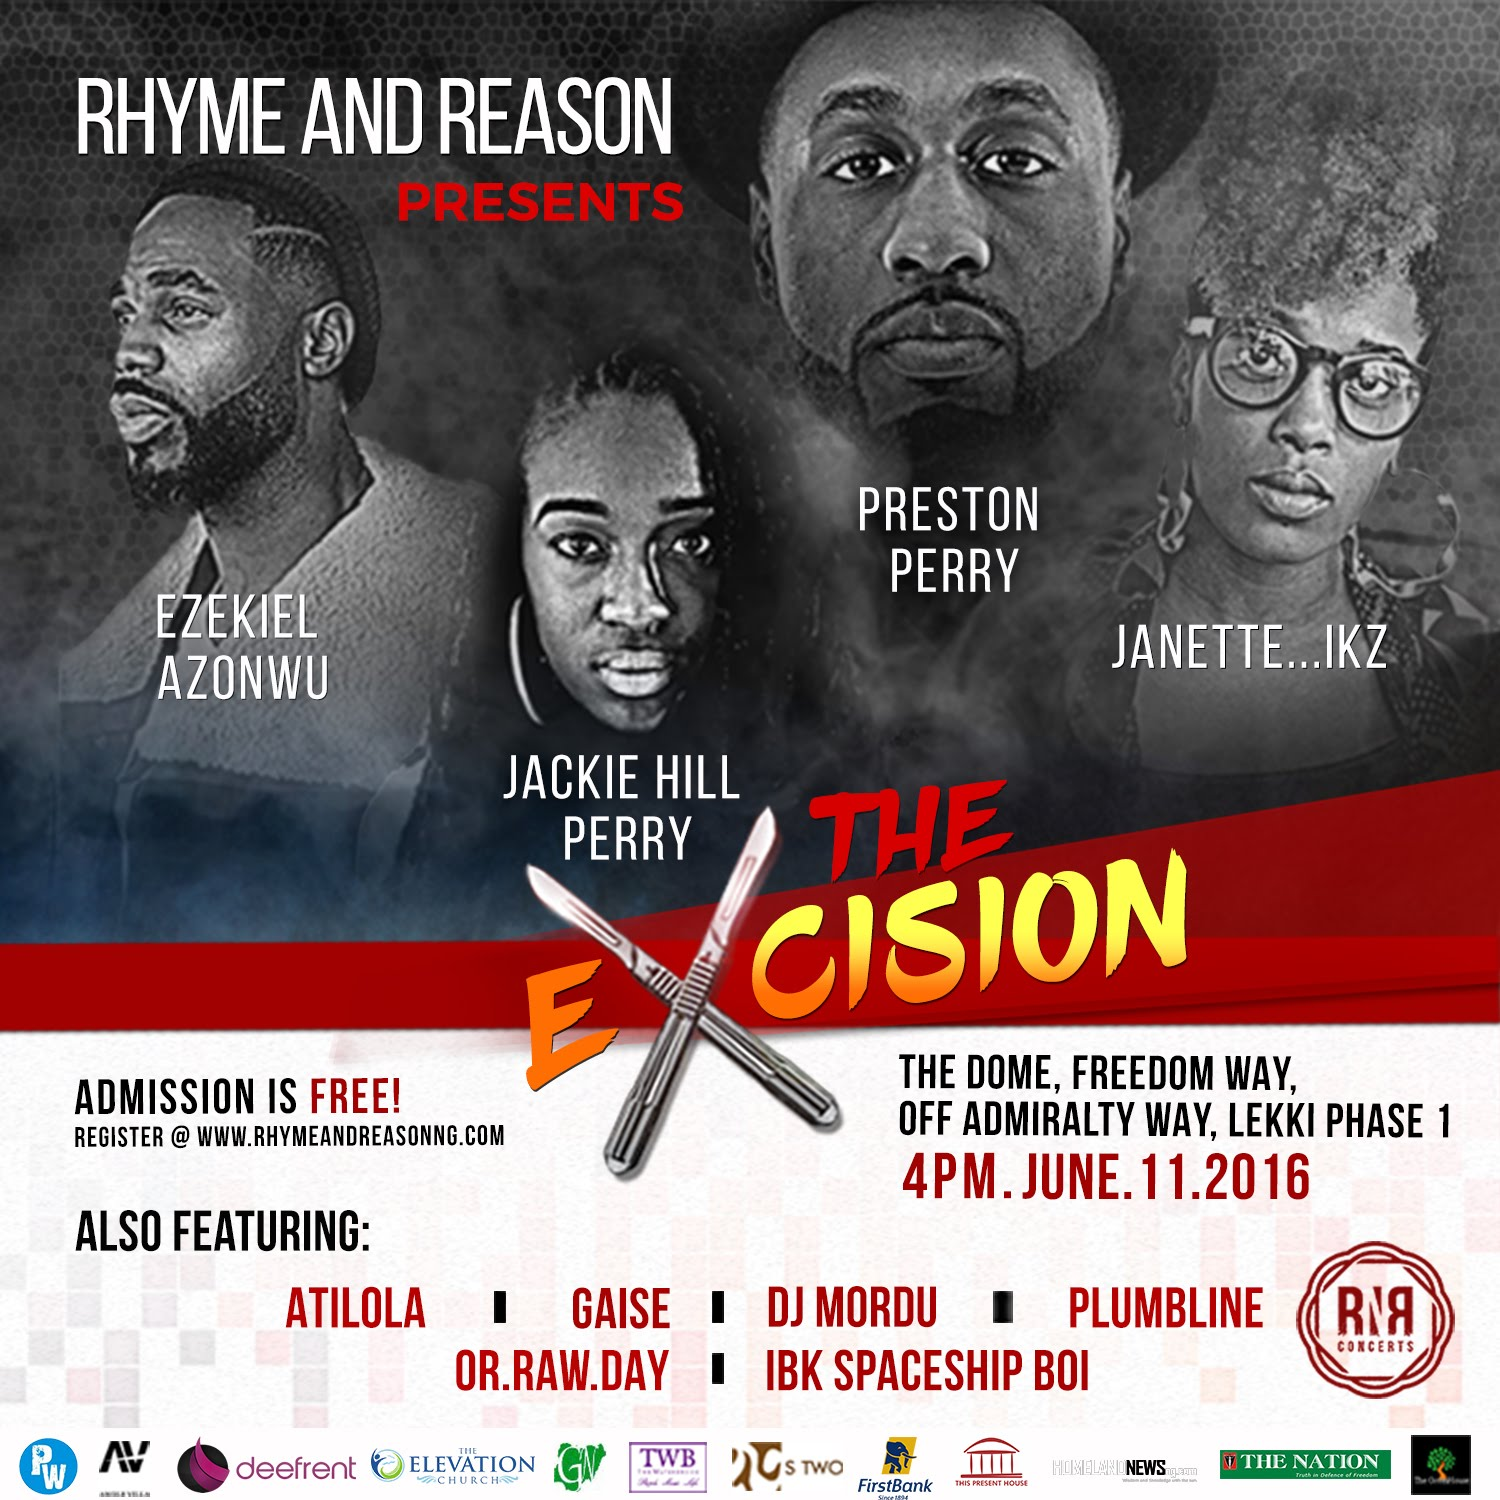 Rhyme and Reason: The Excision